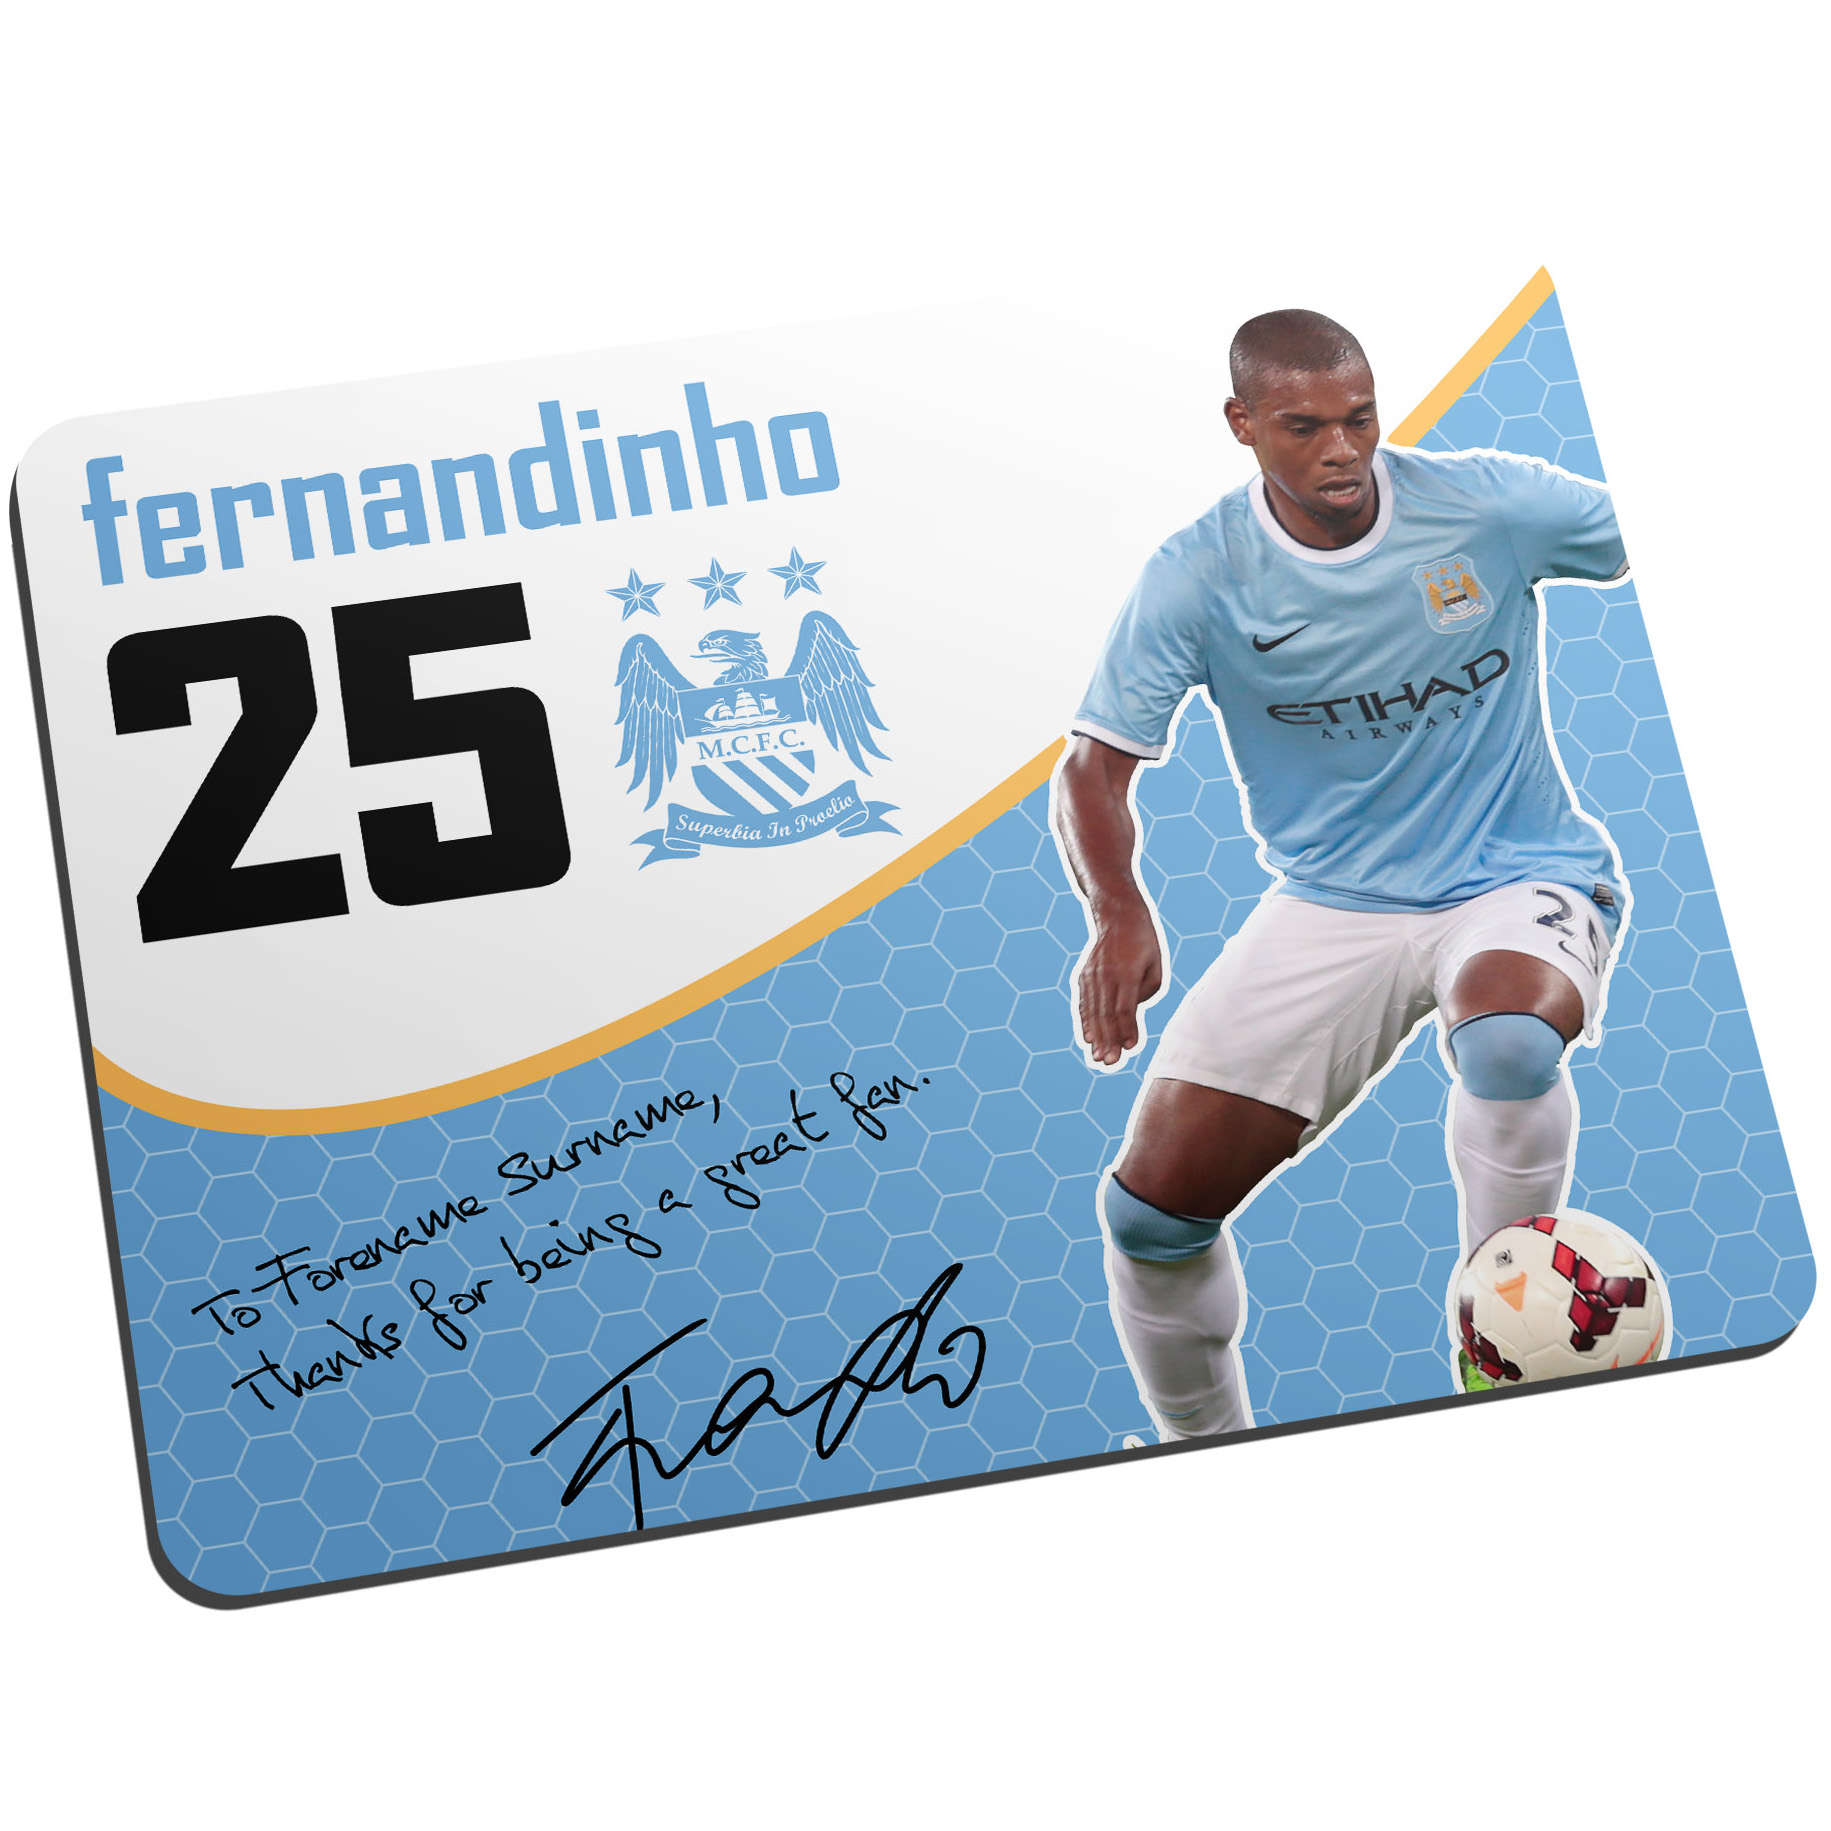 Manchester City Personalised Swirl Signature Mouse Mat - Fernandinho